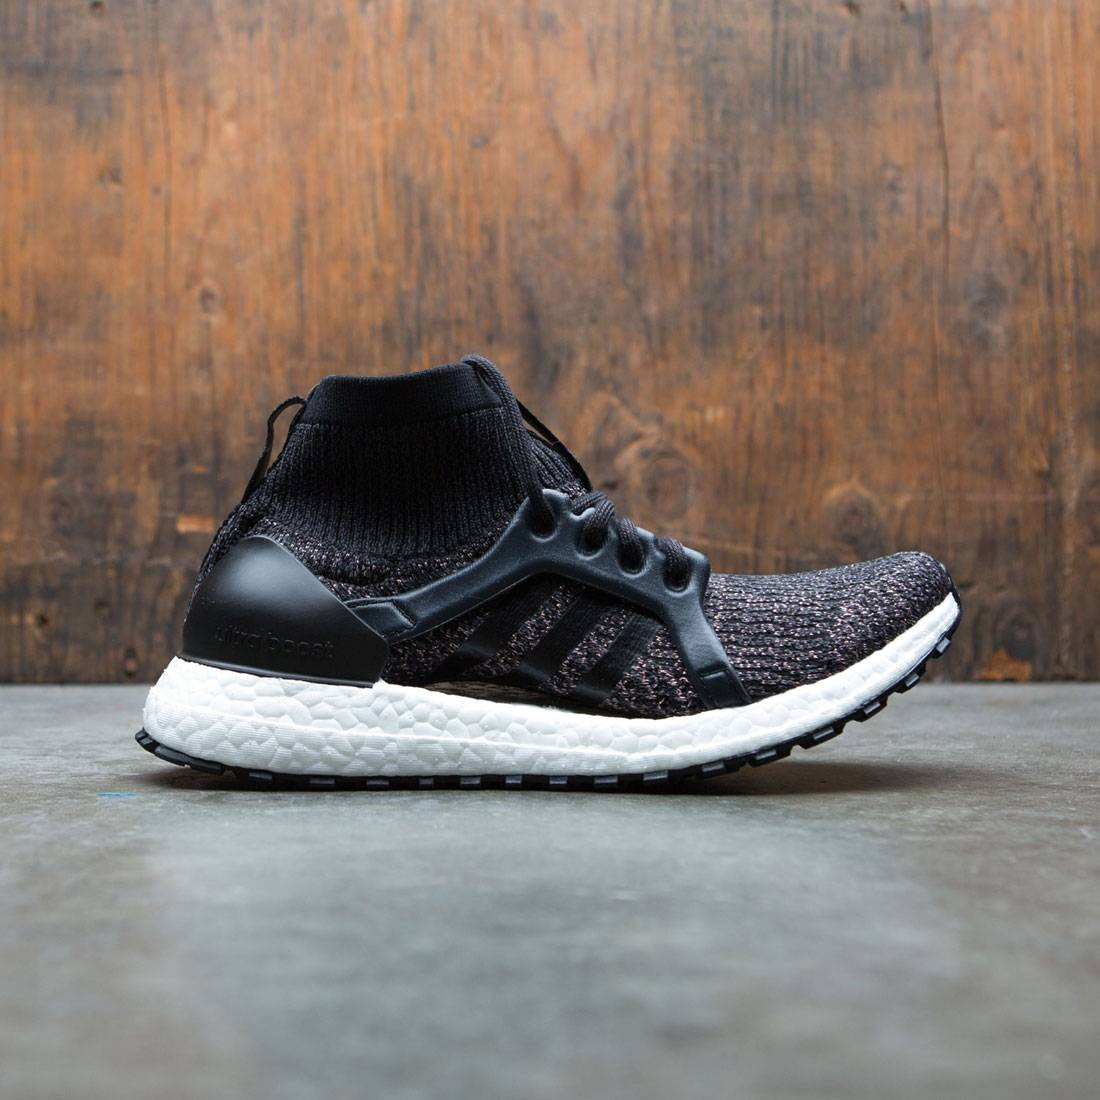 f8f012395 Adidas Women UltraBOOST X All Terrain LTD black core black tech rust  metallic